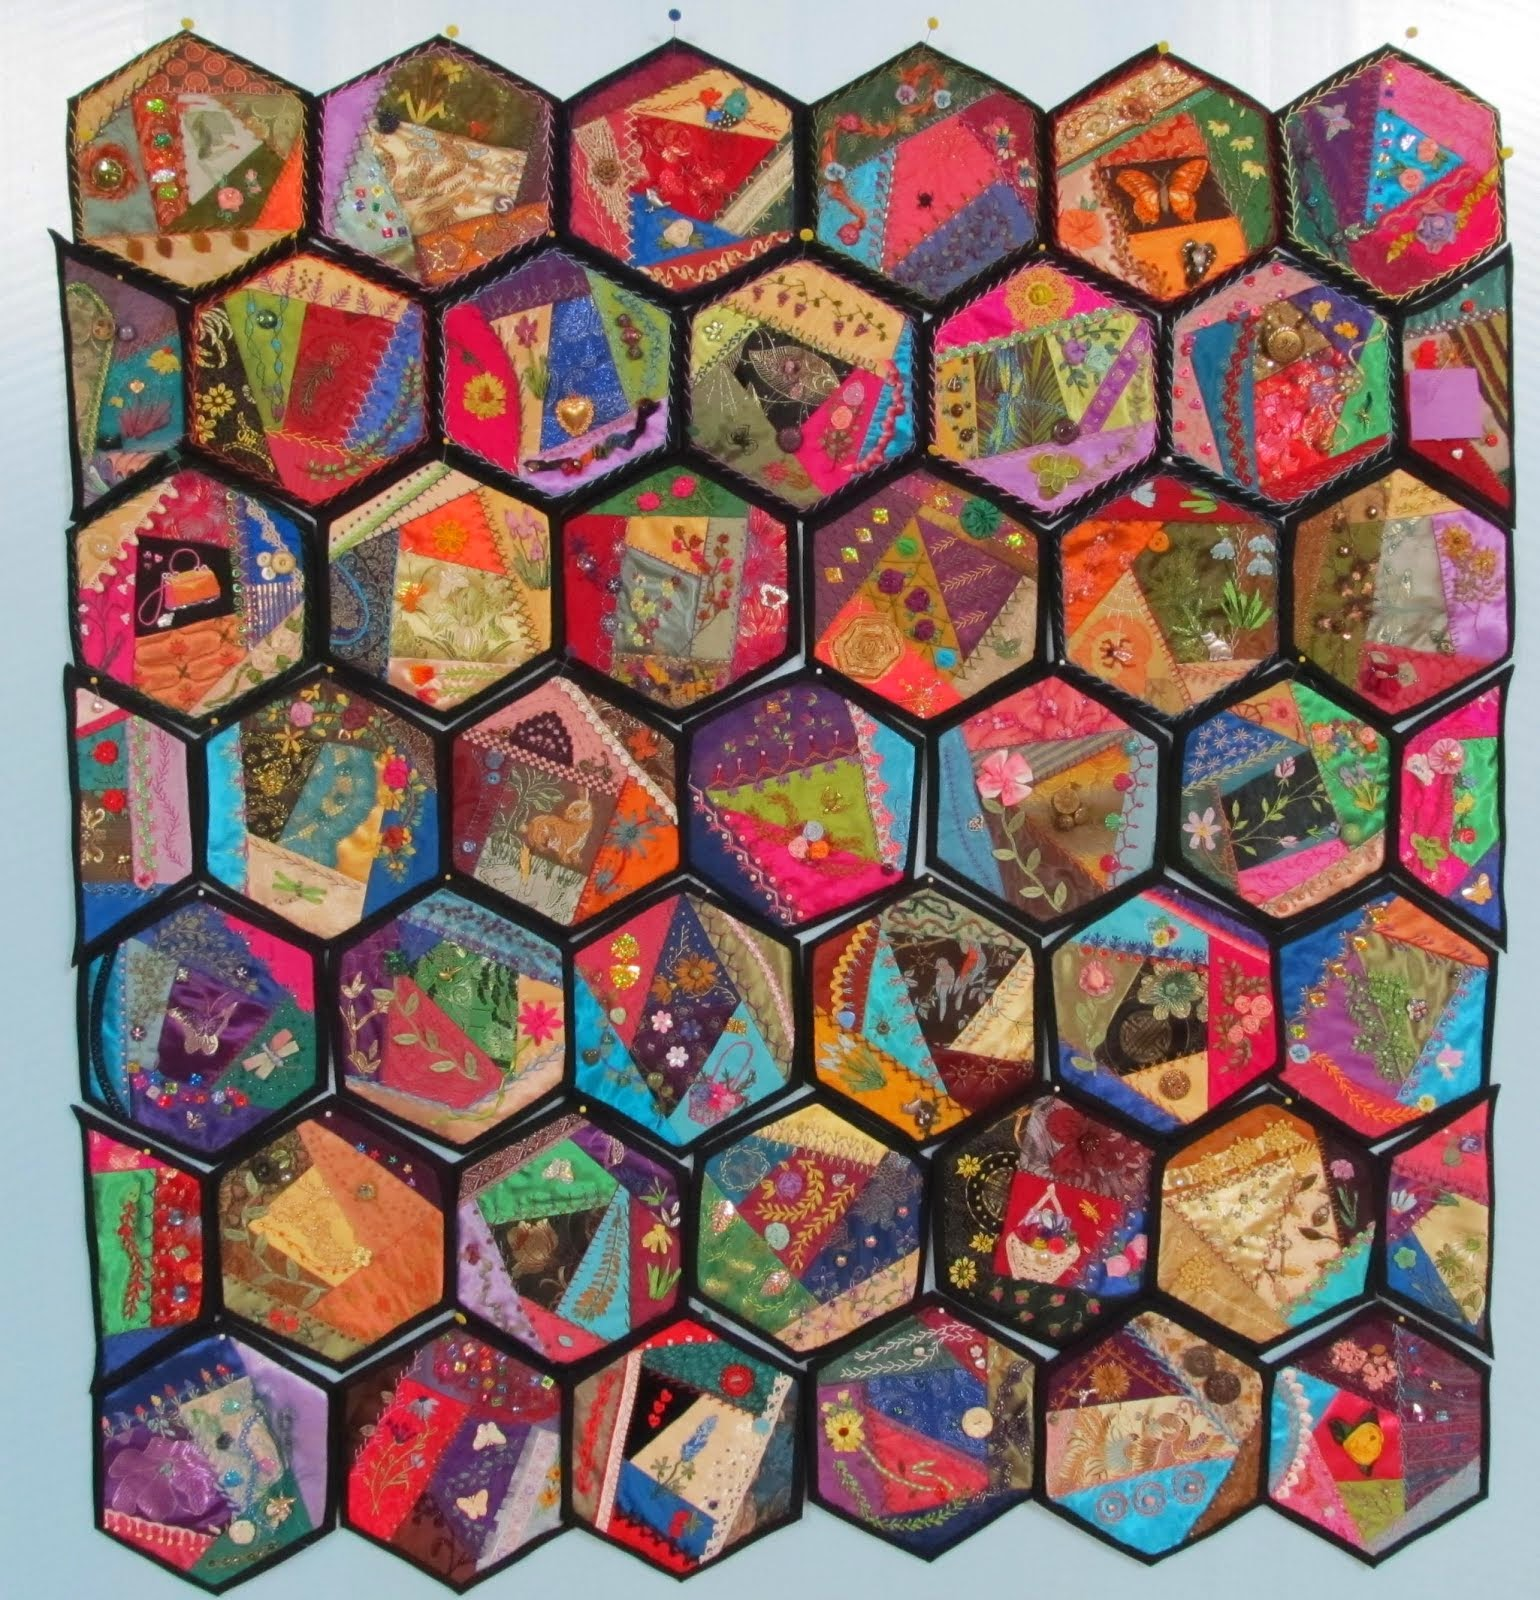 Hexagon Crazy Quilt in progress